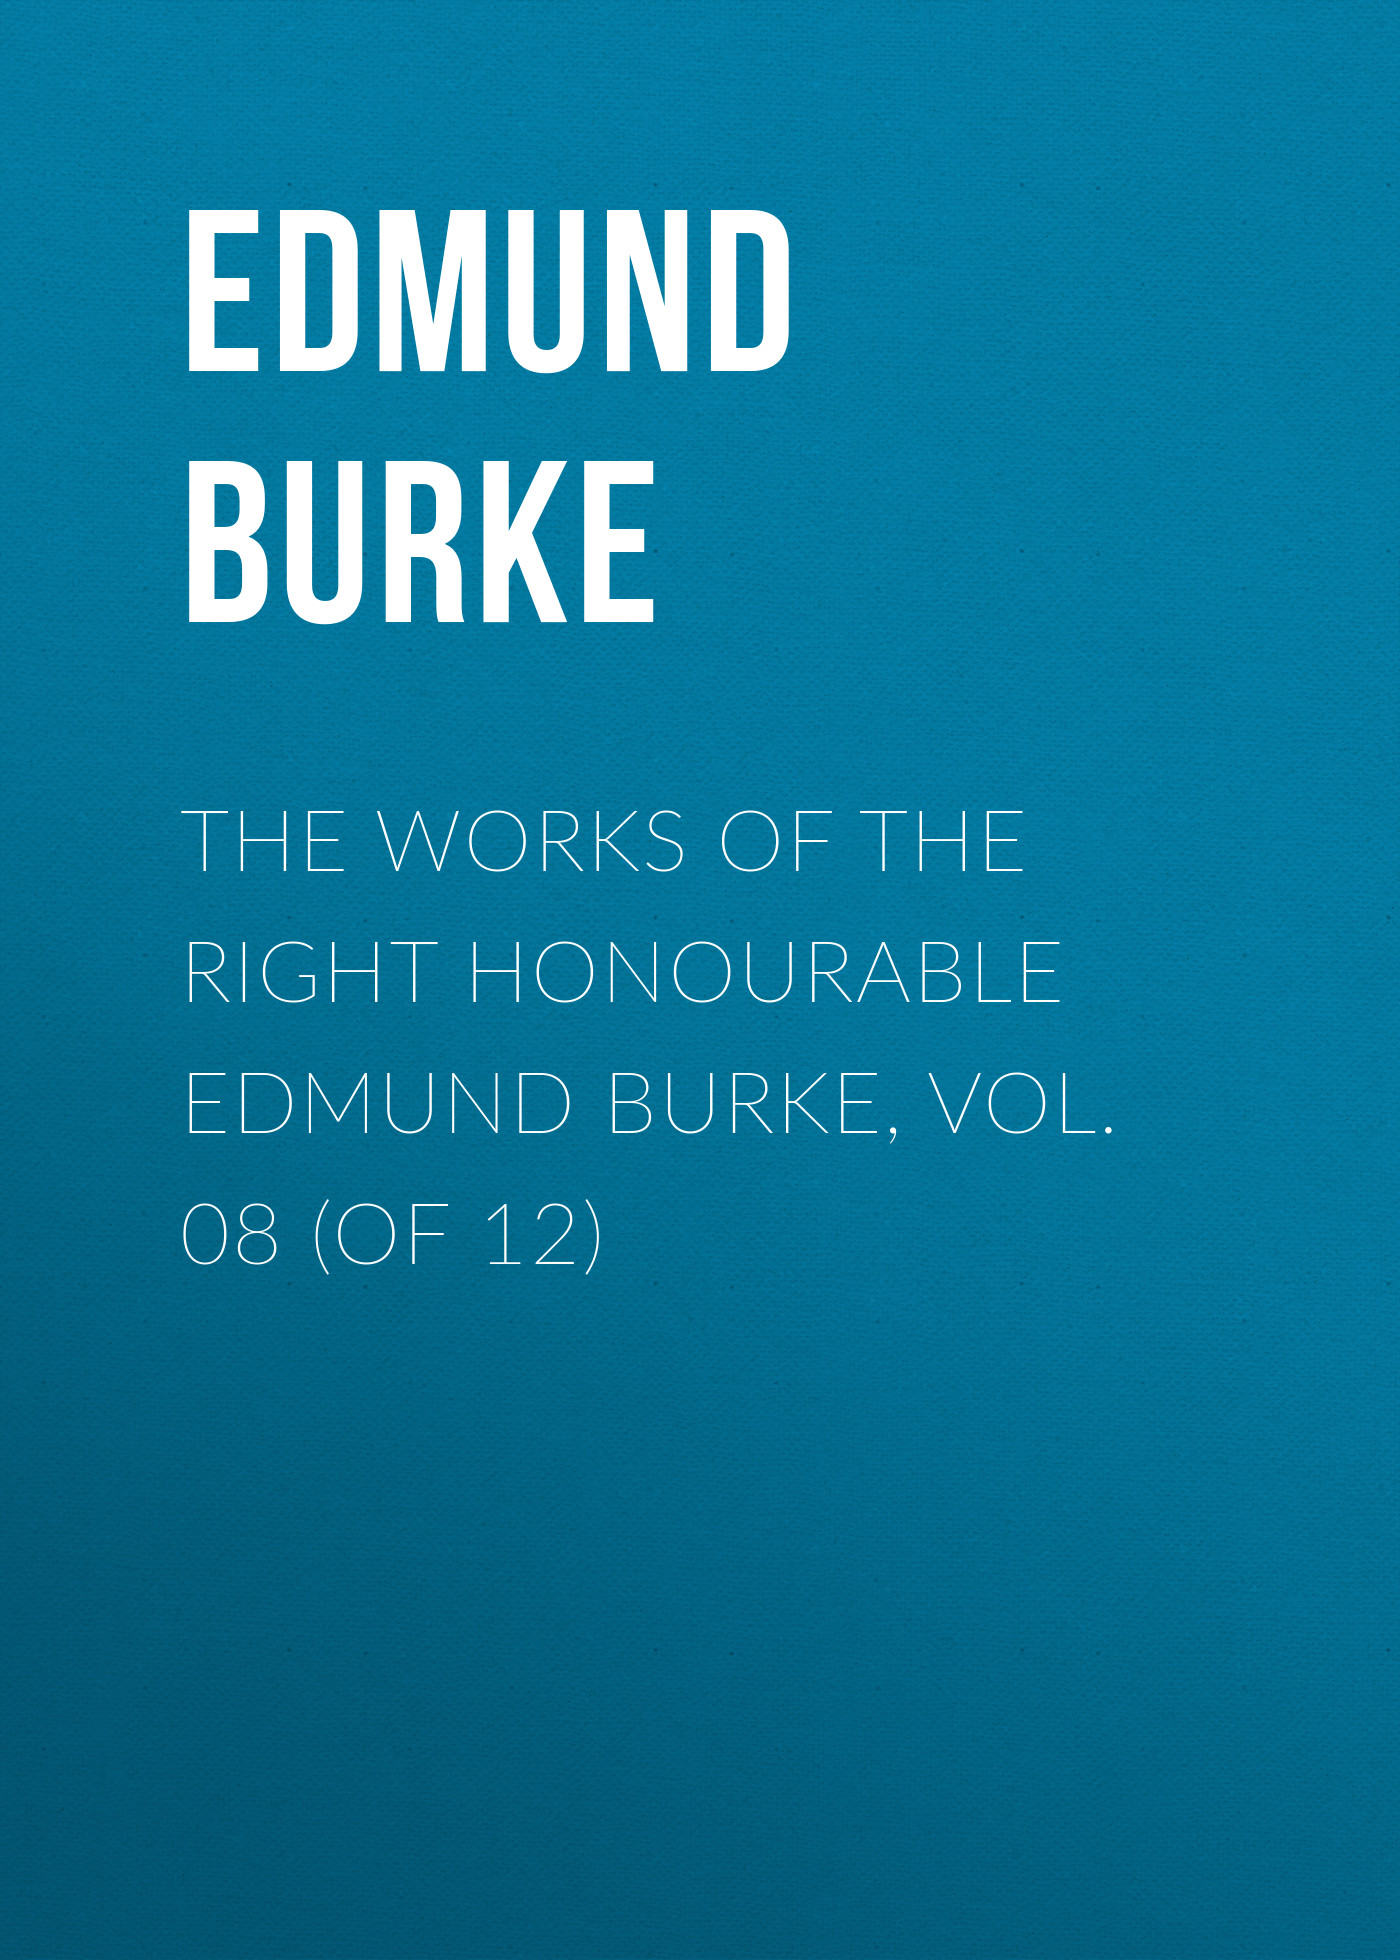 Edmund Burke The Works of the Right Honourable Edmund Burke, Vol. 08 (of 12) edmund burke the works of the right honourable edmund burke vol 09 of 12